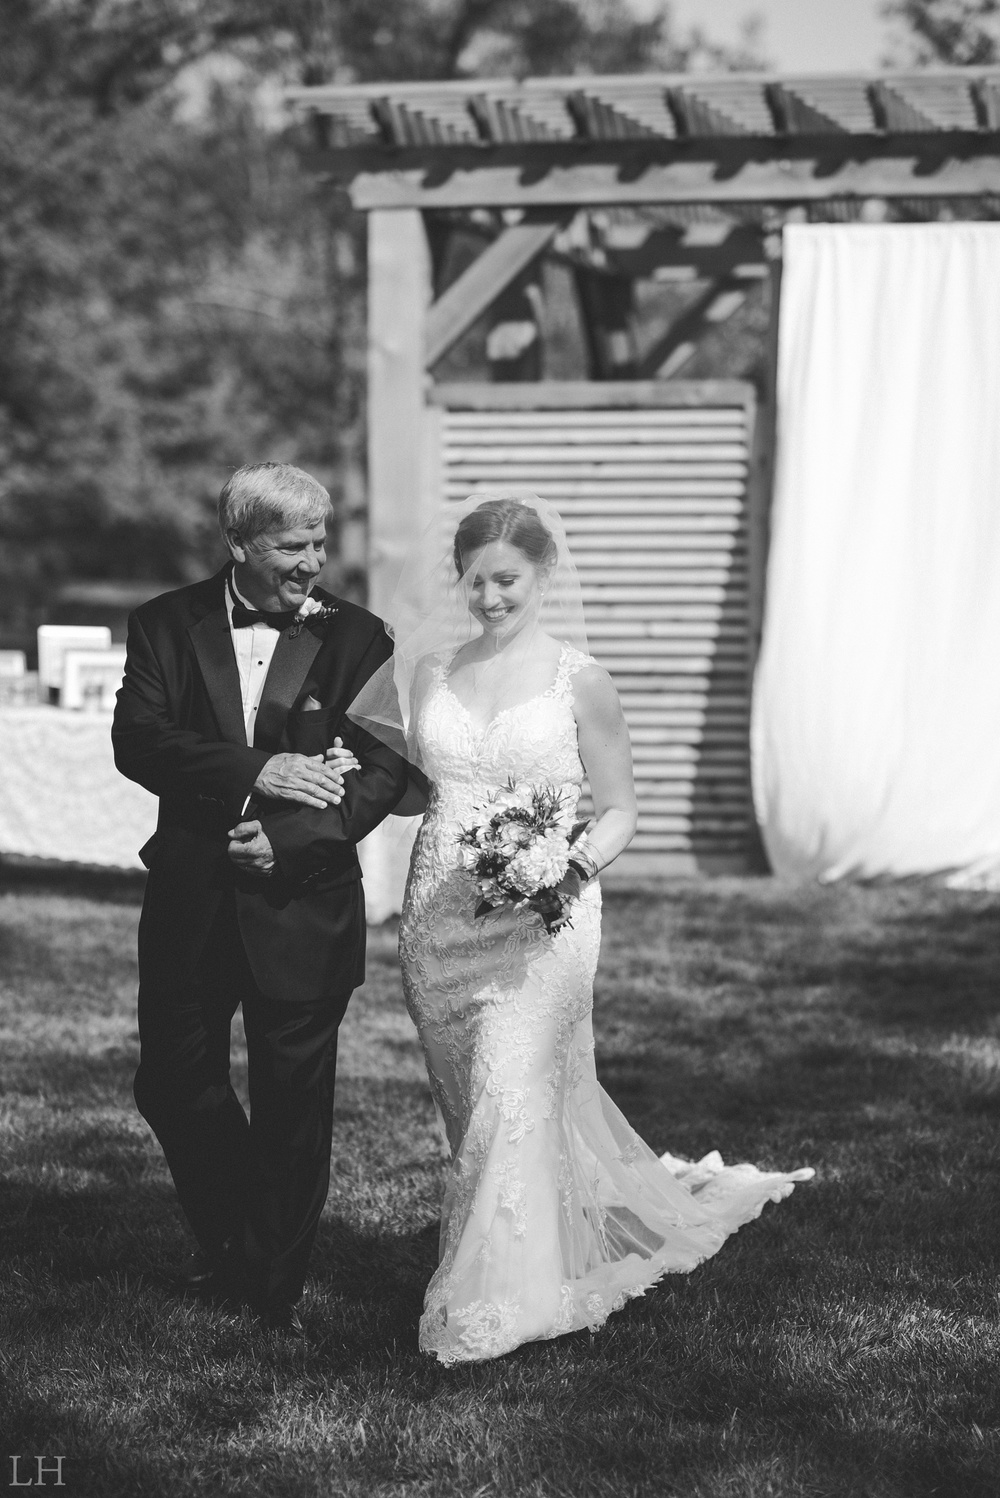 MeganRyanMarried_Blog169.jpg